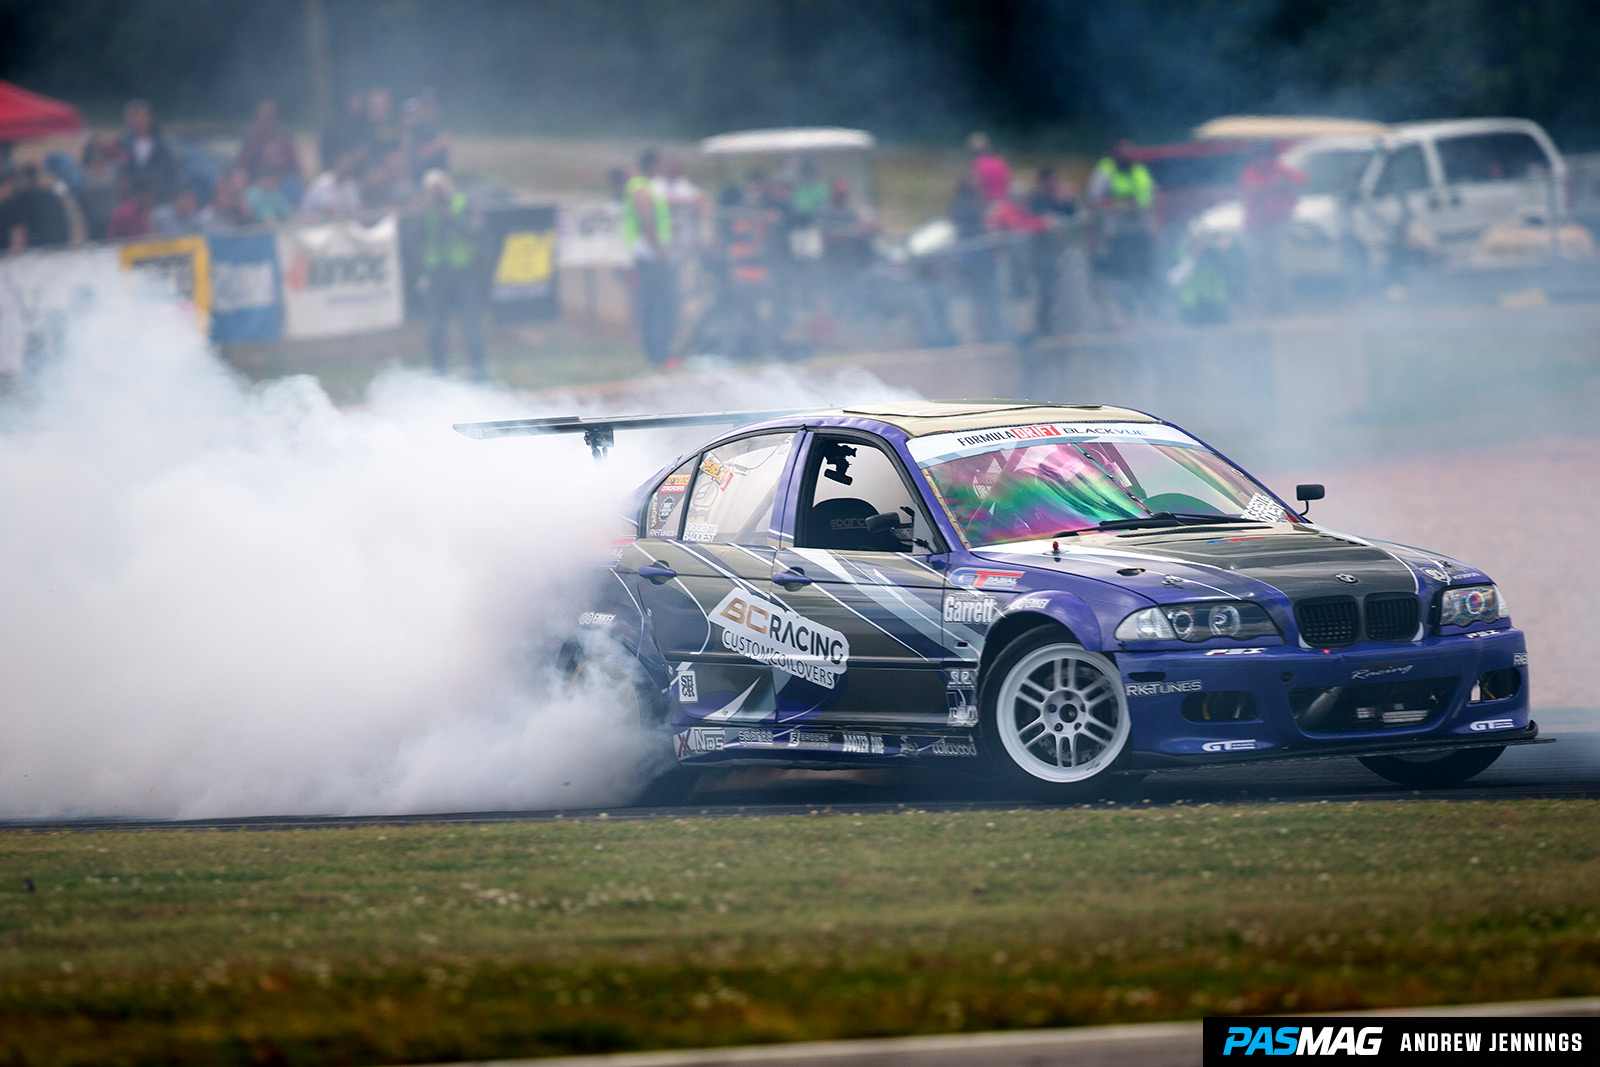 Keeping It Rowdy Chelsea Denofa S 2001 Bmw 3 Series Sedan E46 Pasmag Is The Tuner S Source For Modified Car Culture Since 1999